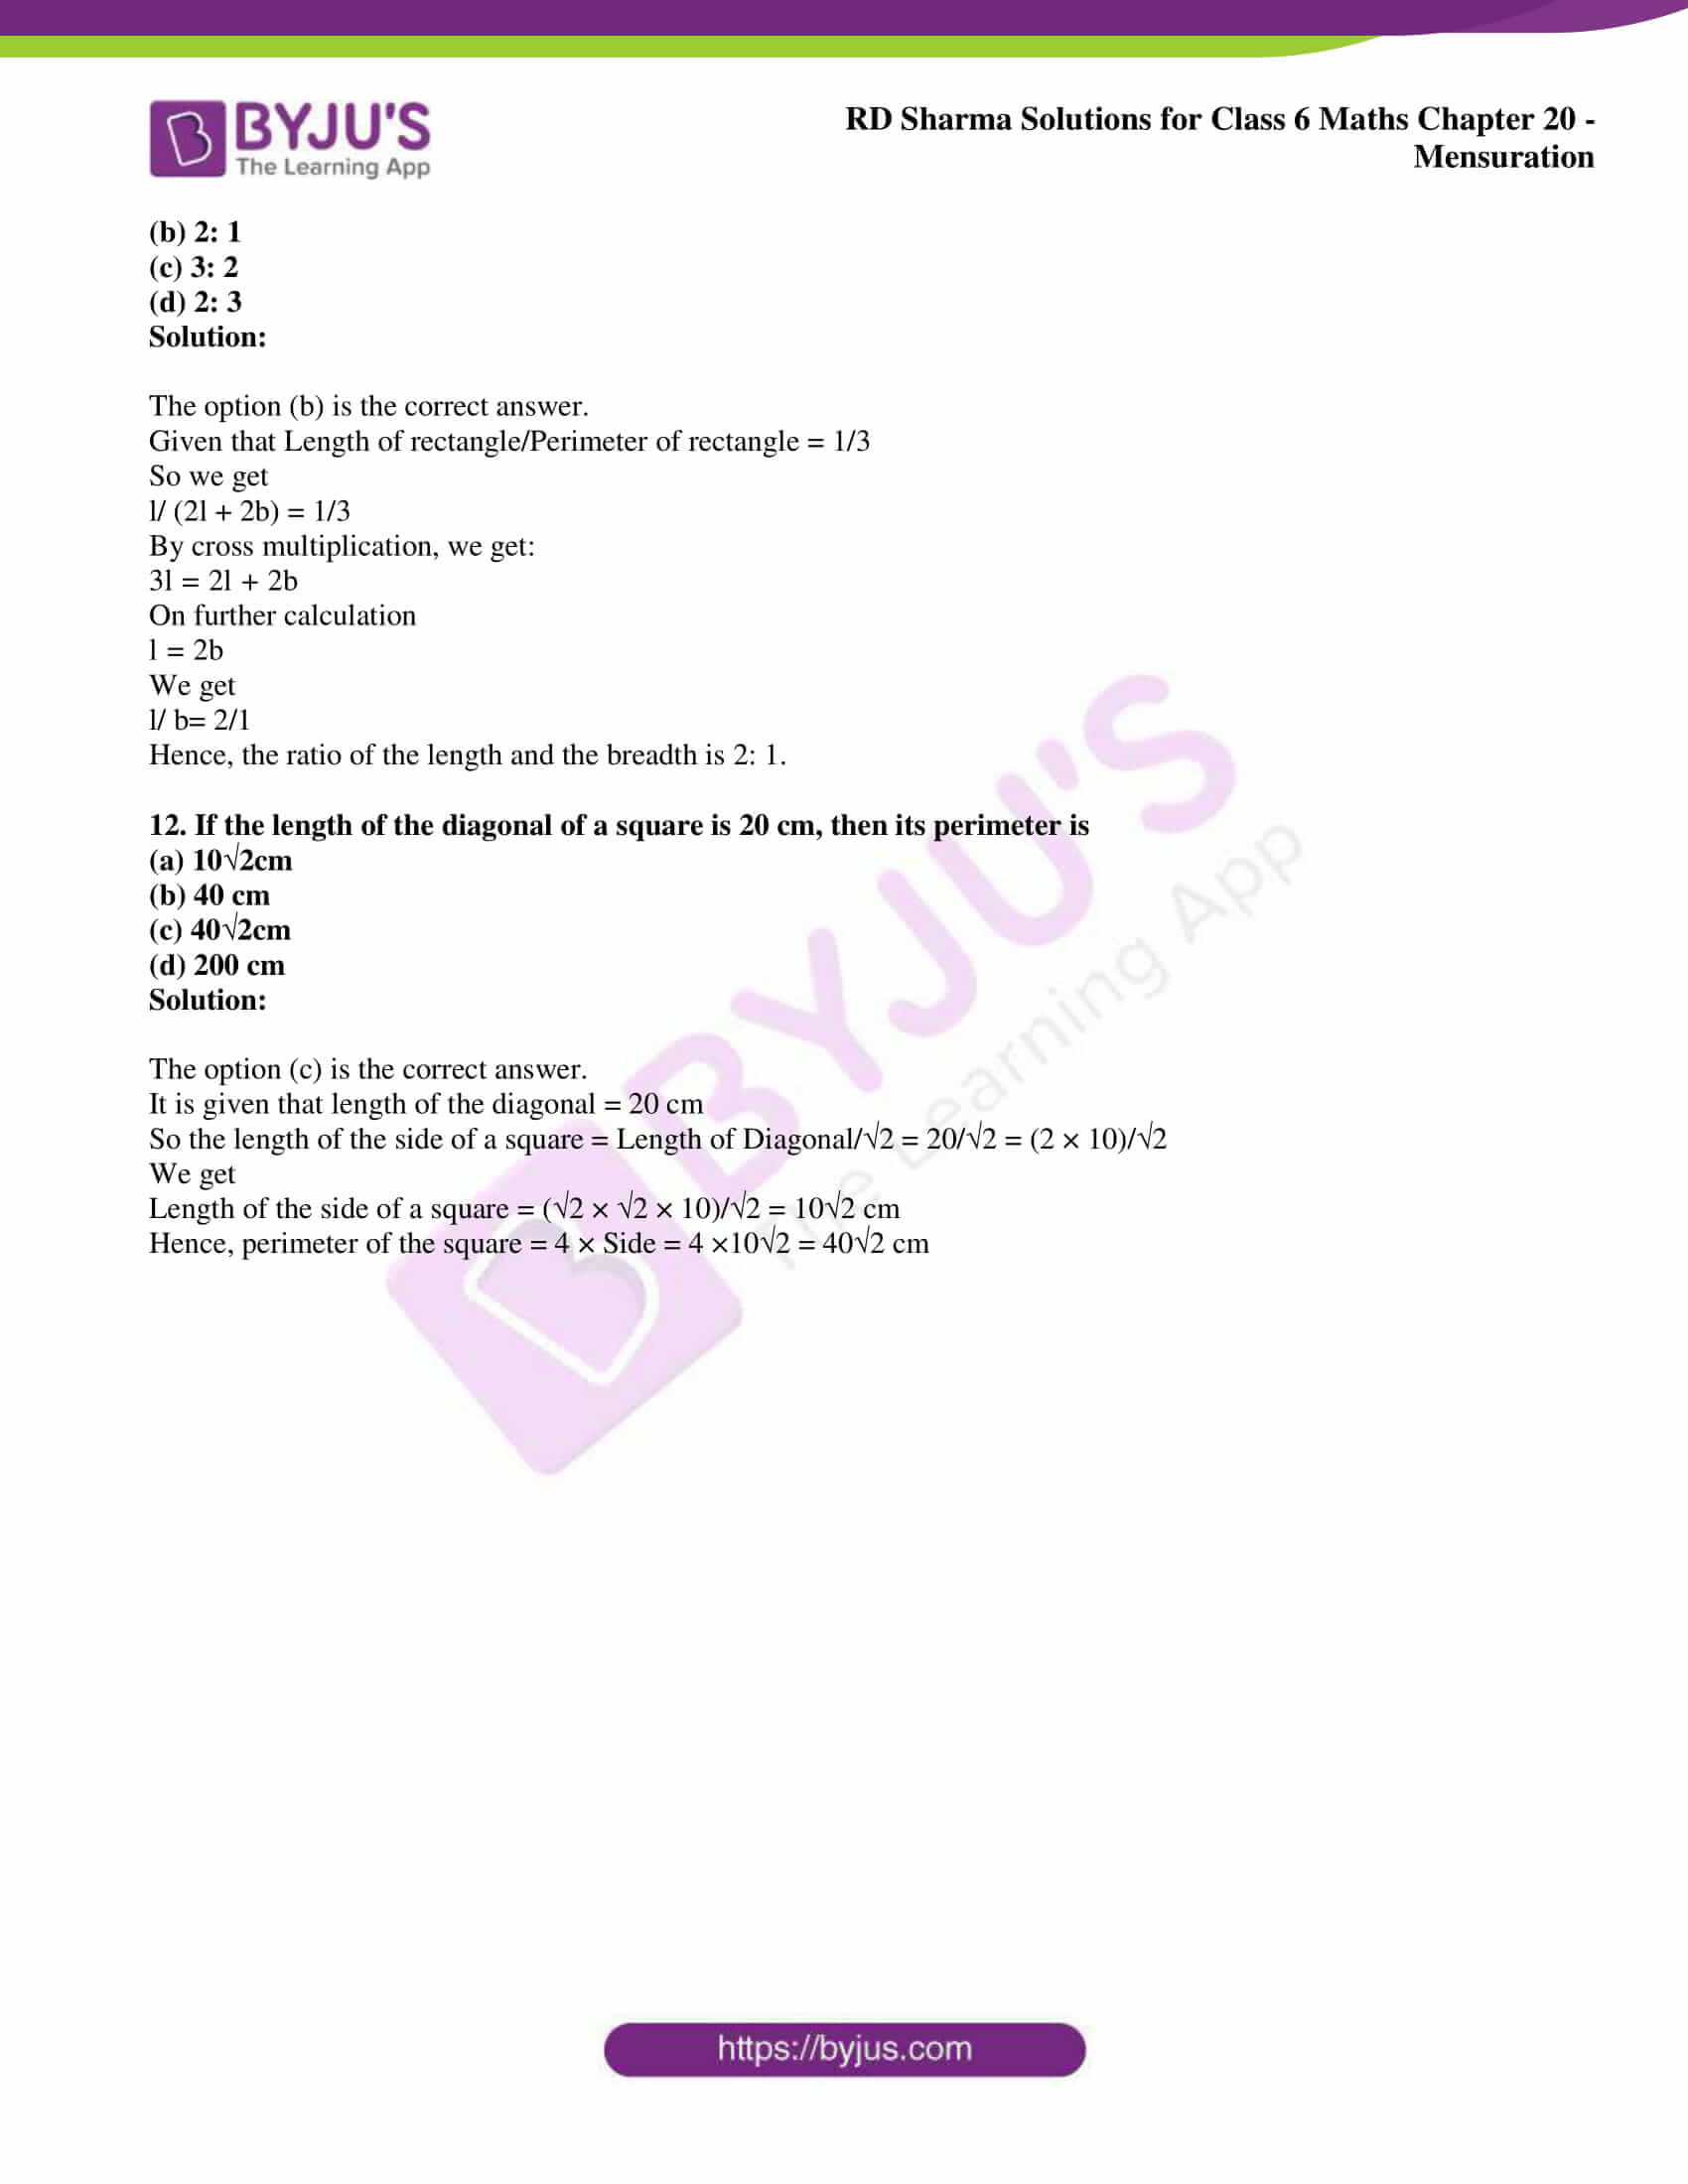 rd sharma solutions nov2020 class 6 maths chapter 20 exercise obj 6